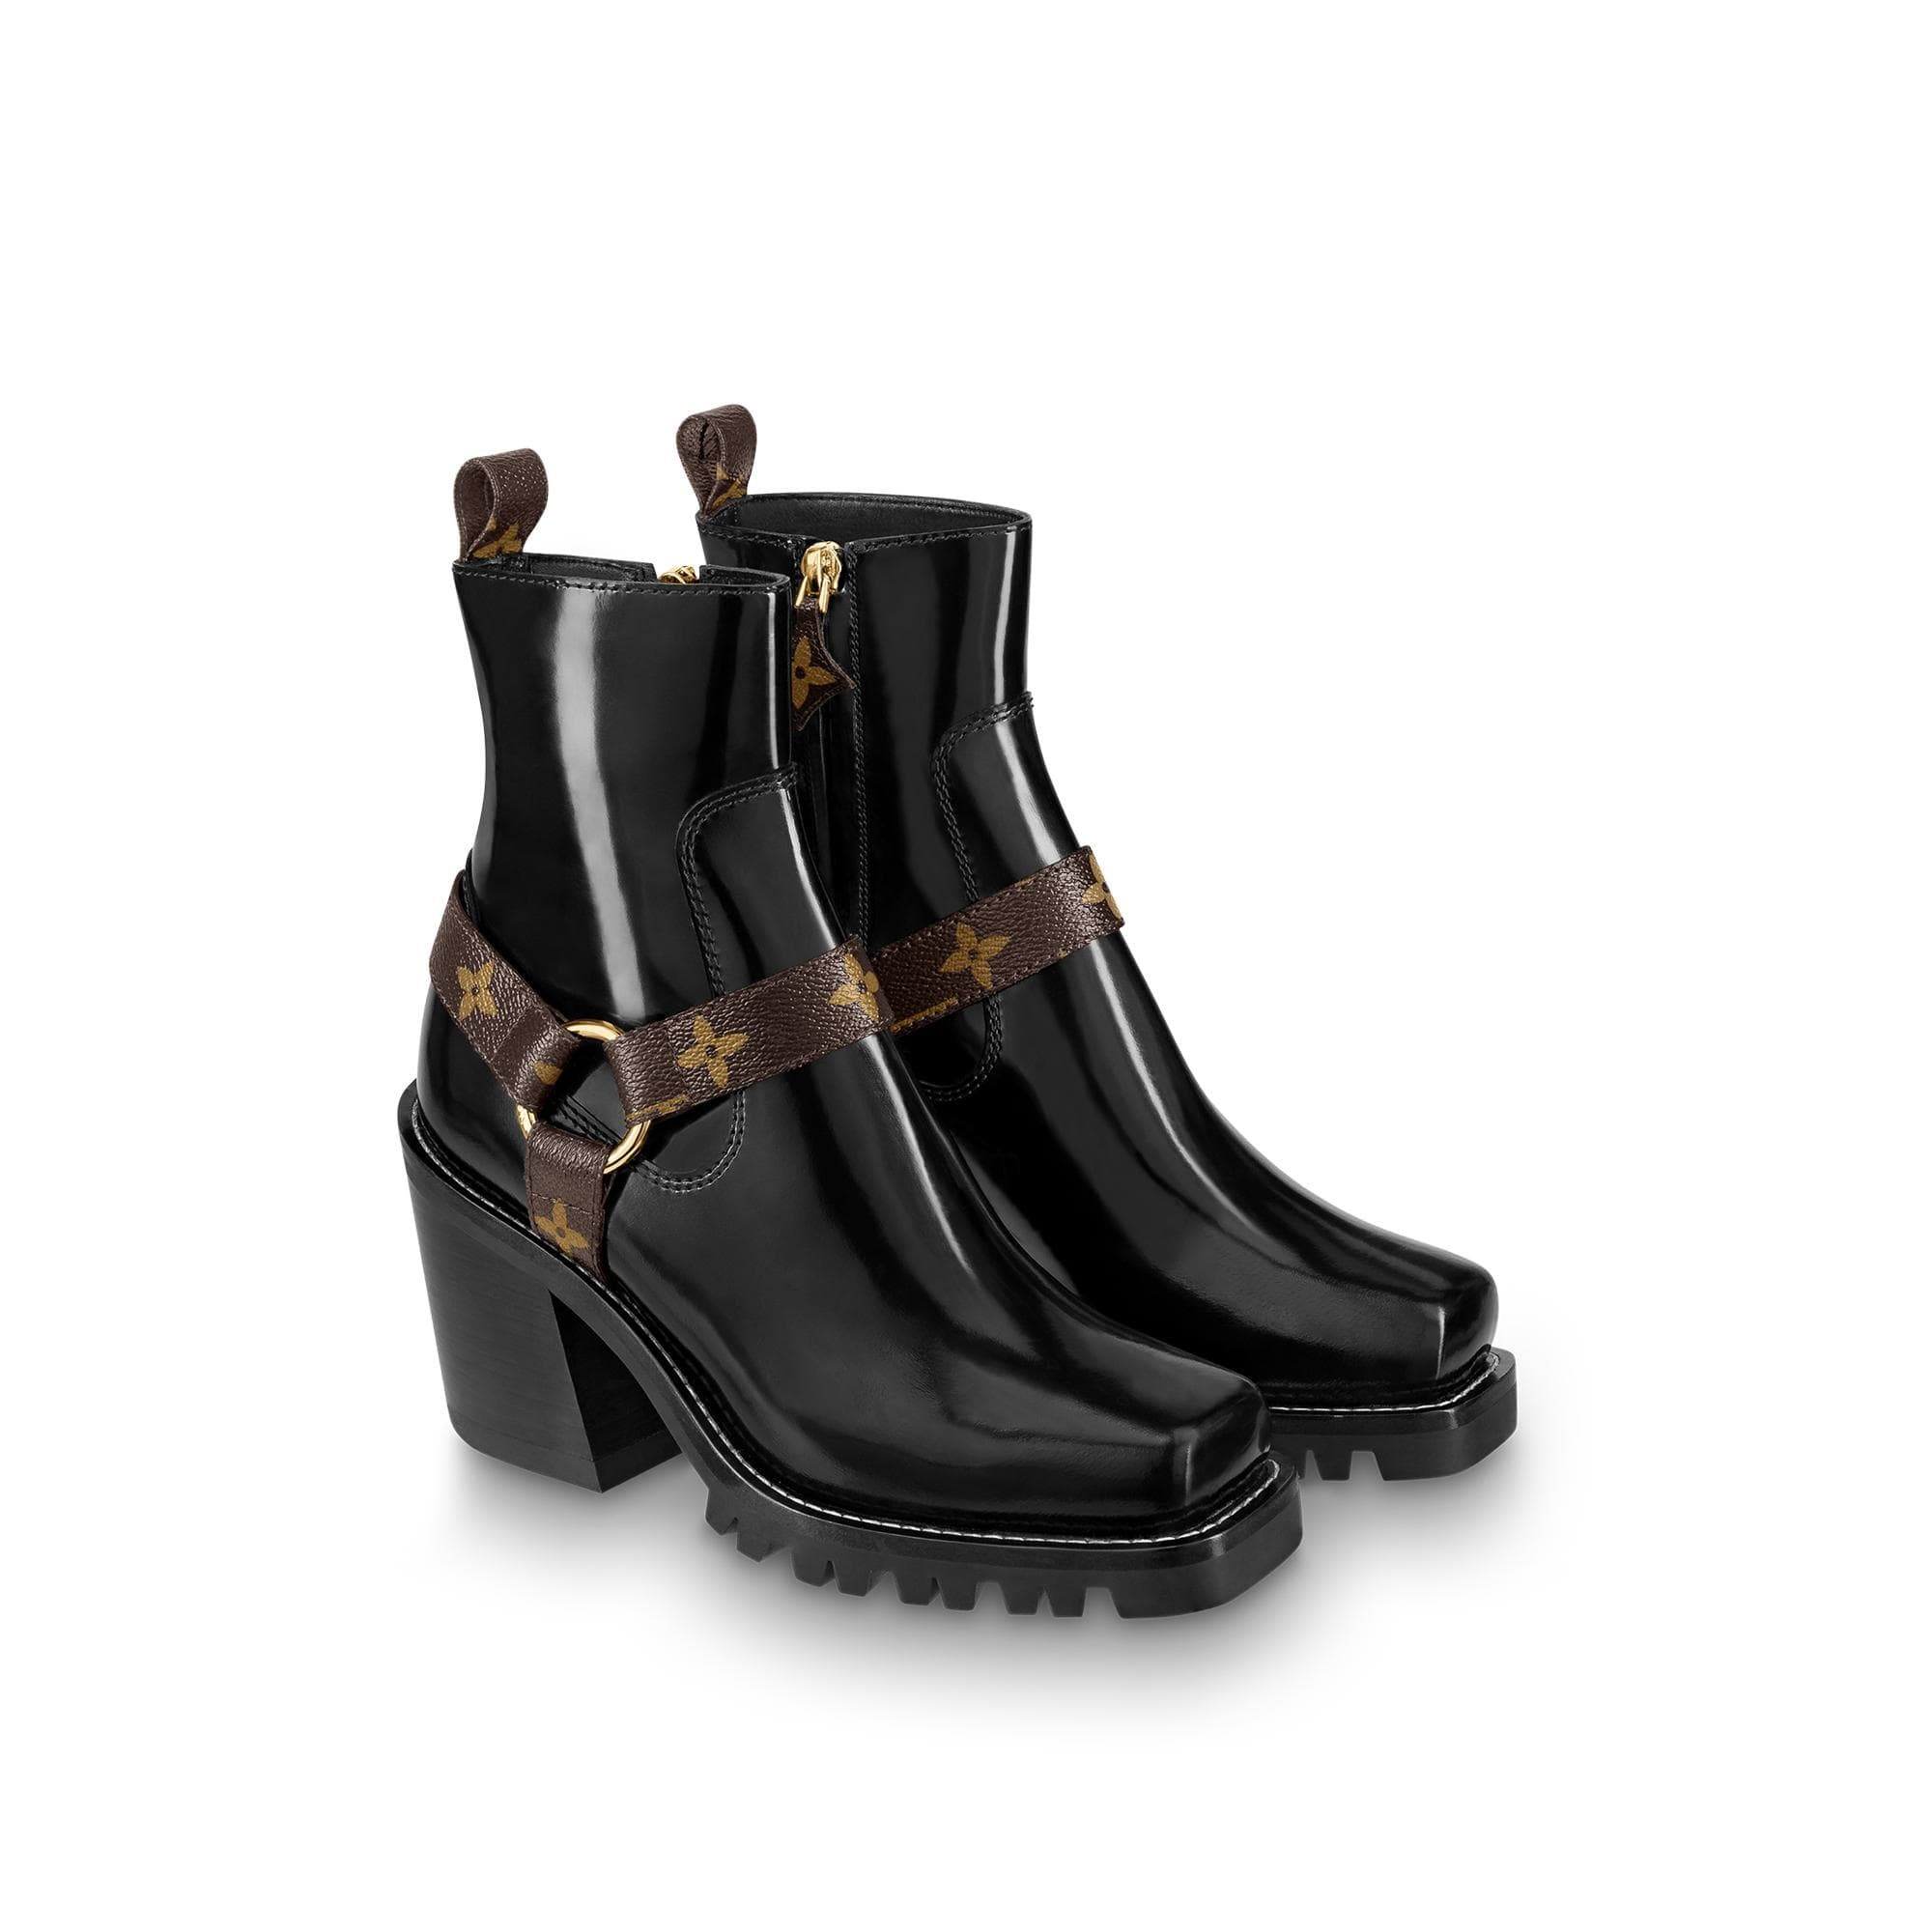 유럽직배송 루이비통 LOUIS VUITTON Limitless Ankle Boot 1A4WKE